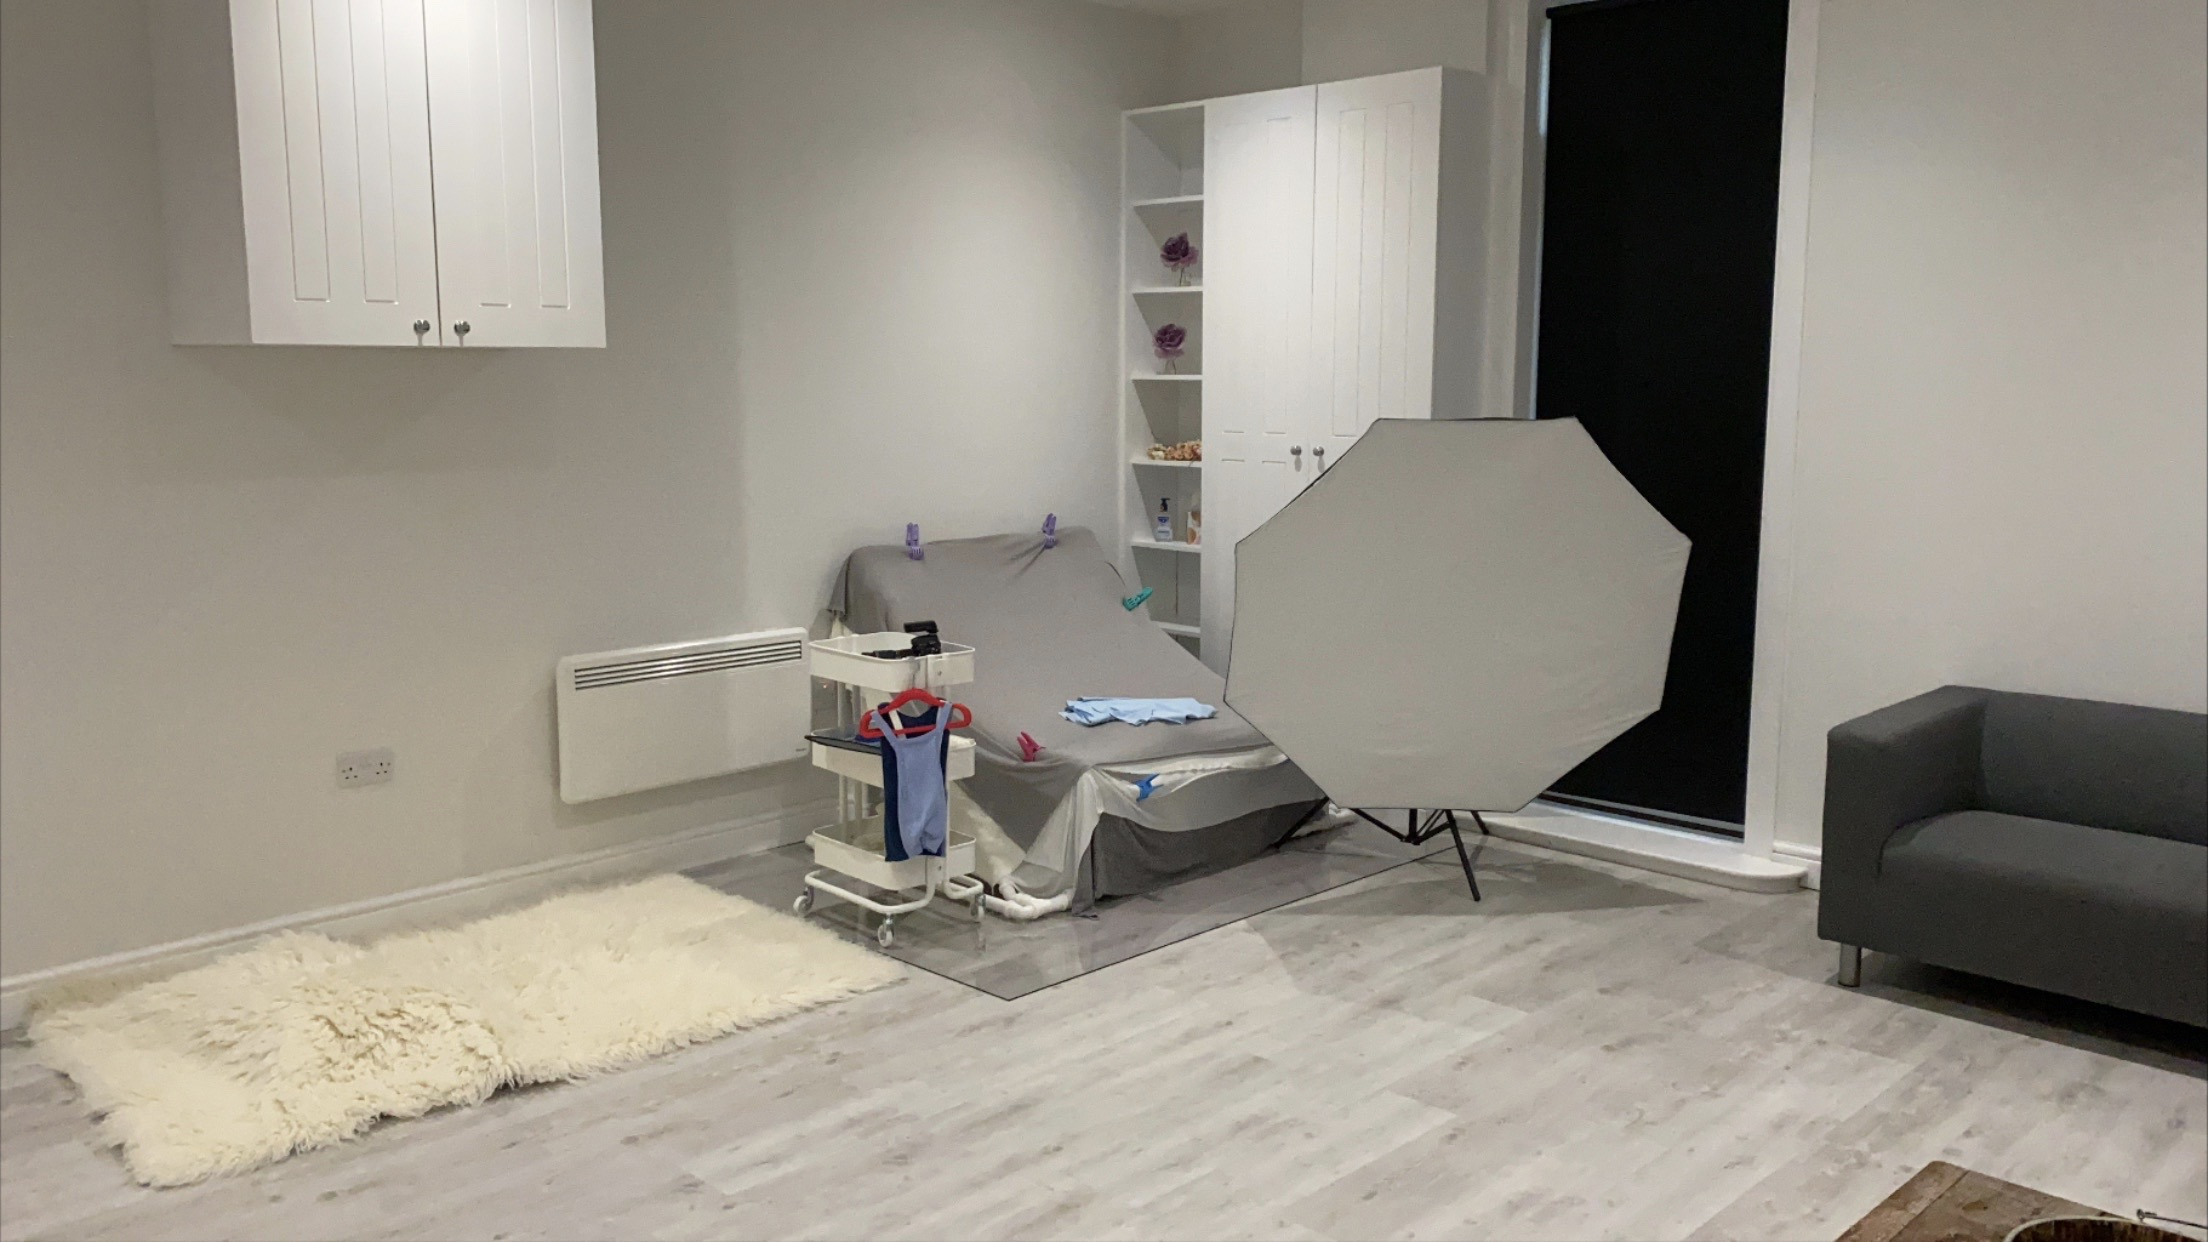 Welcoming photography studio in Bromley, Bickley, Orpington, Petts Wood and surrounding areas in Kent